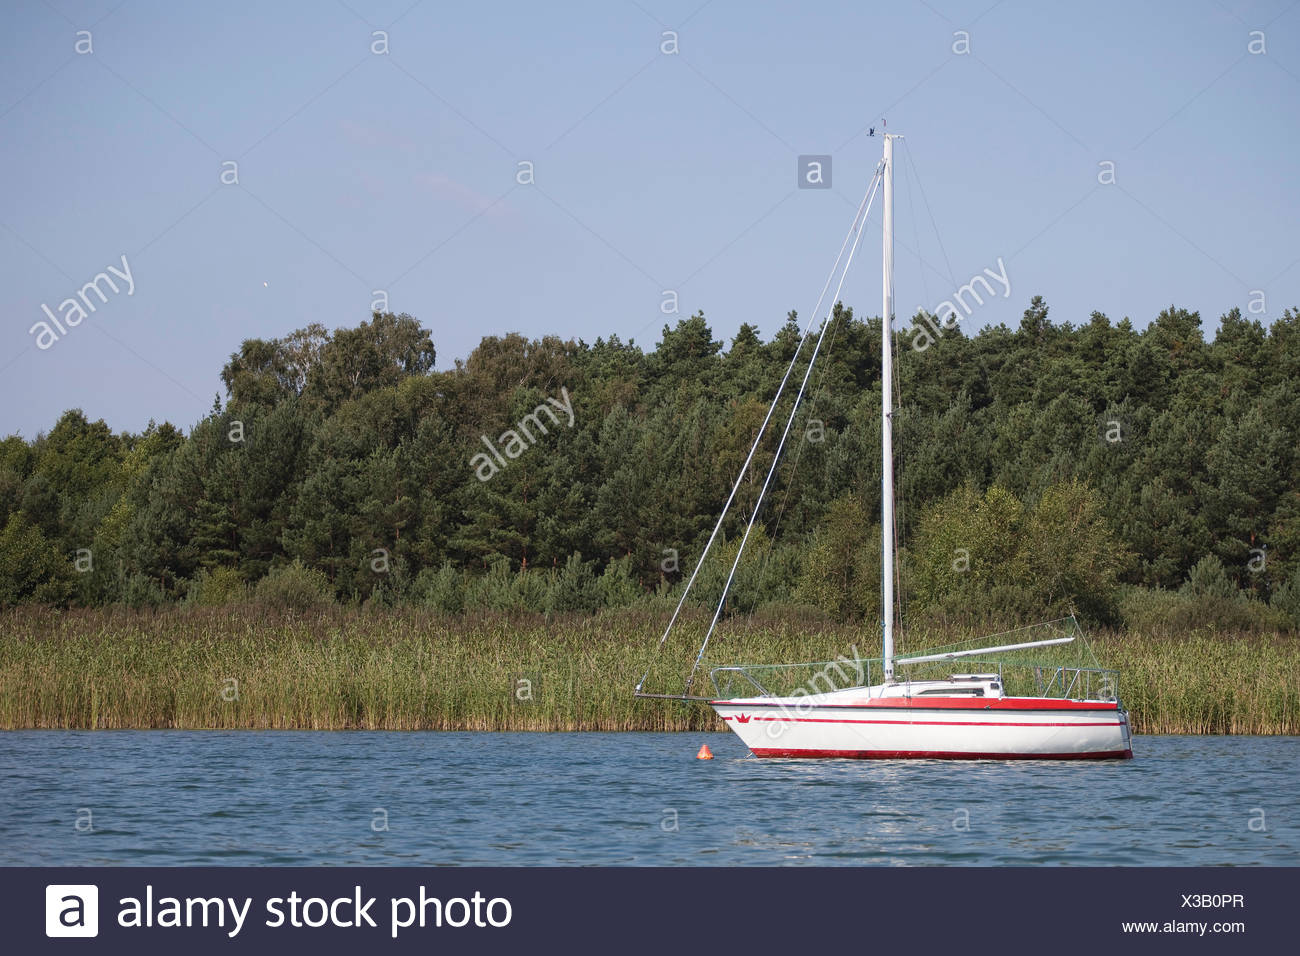 small private yacht - Stock Image